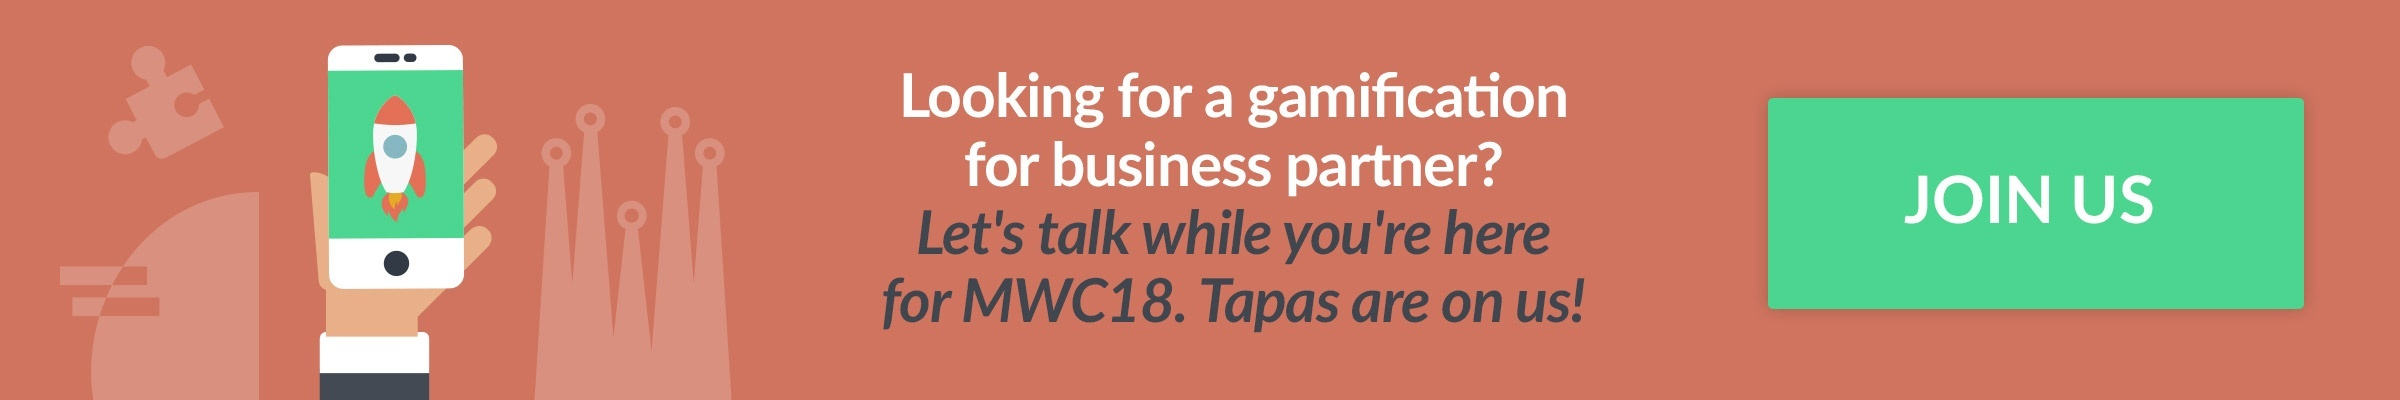 MWC18 gamification midcontent CTA